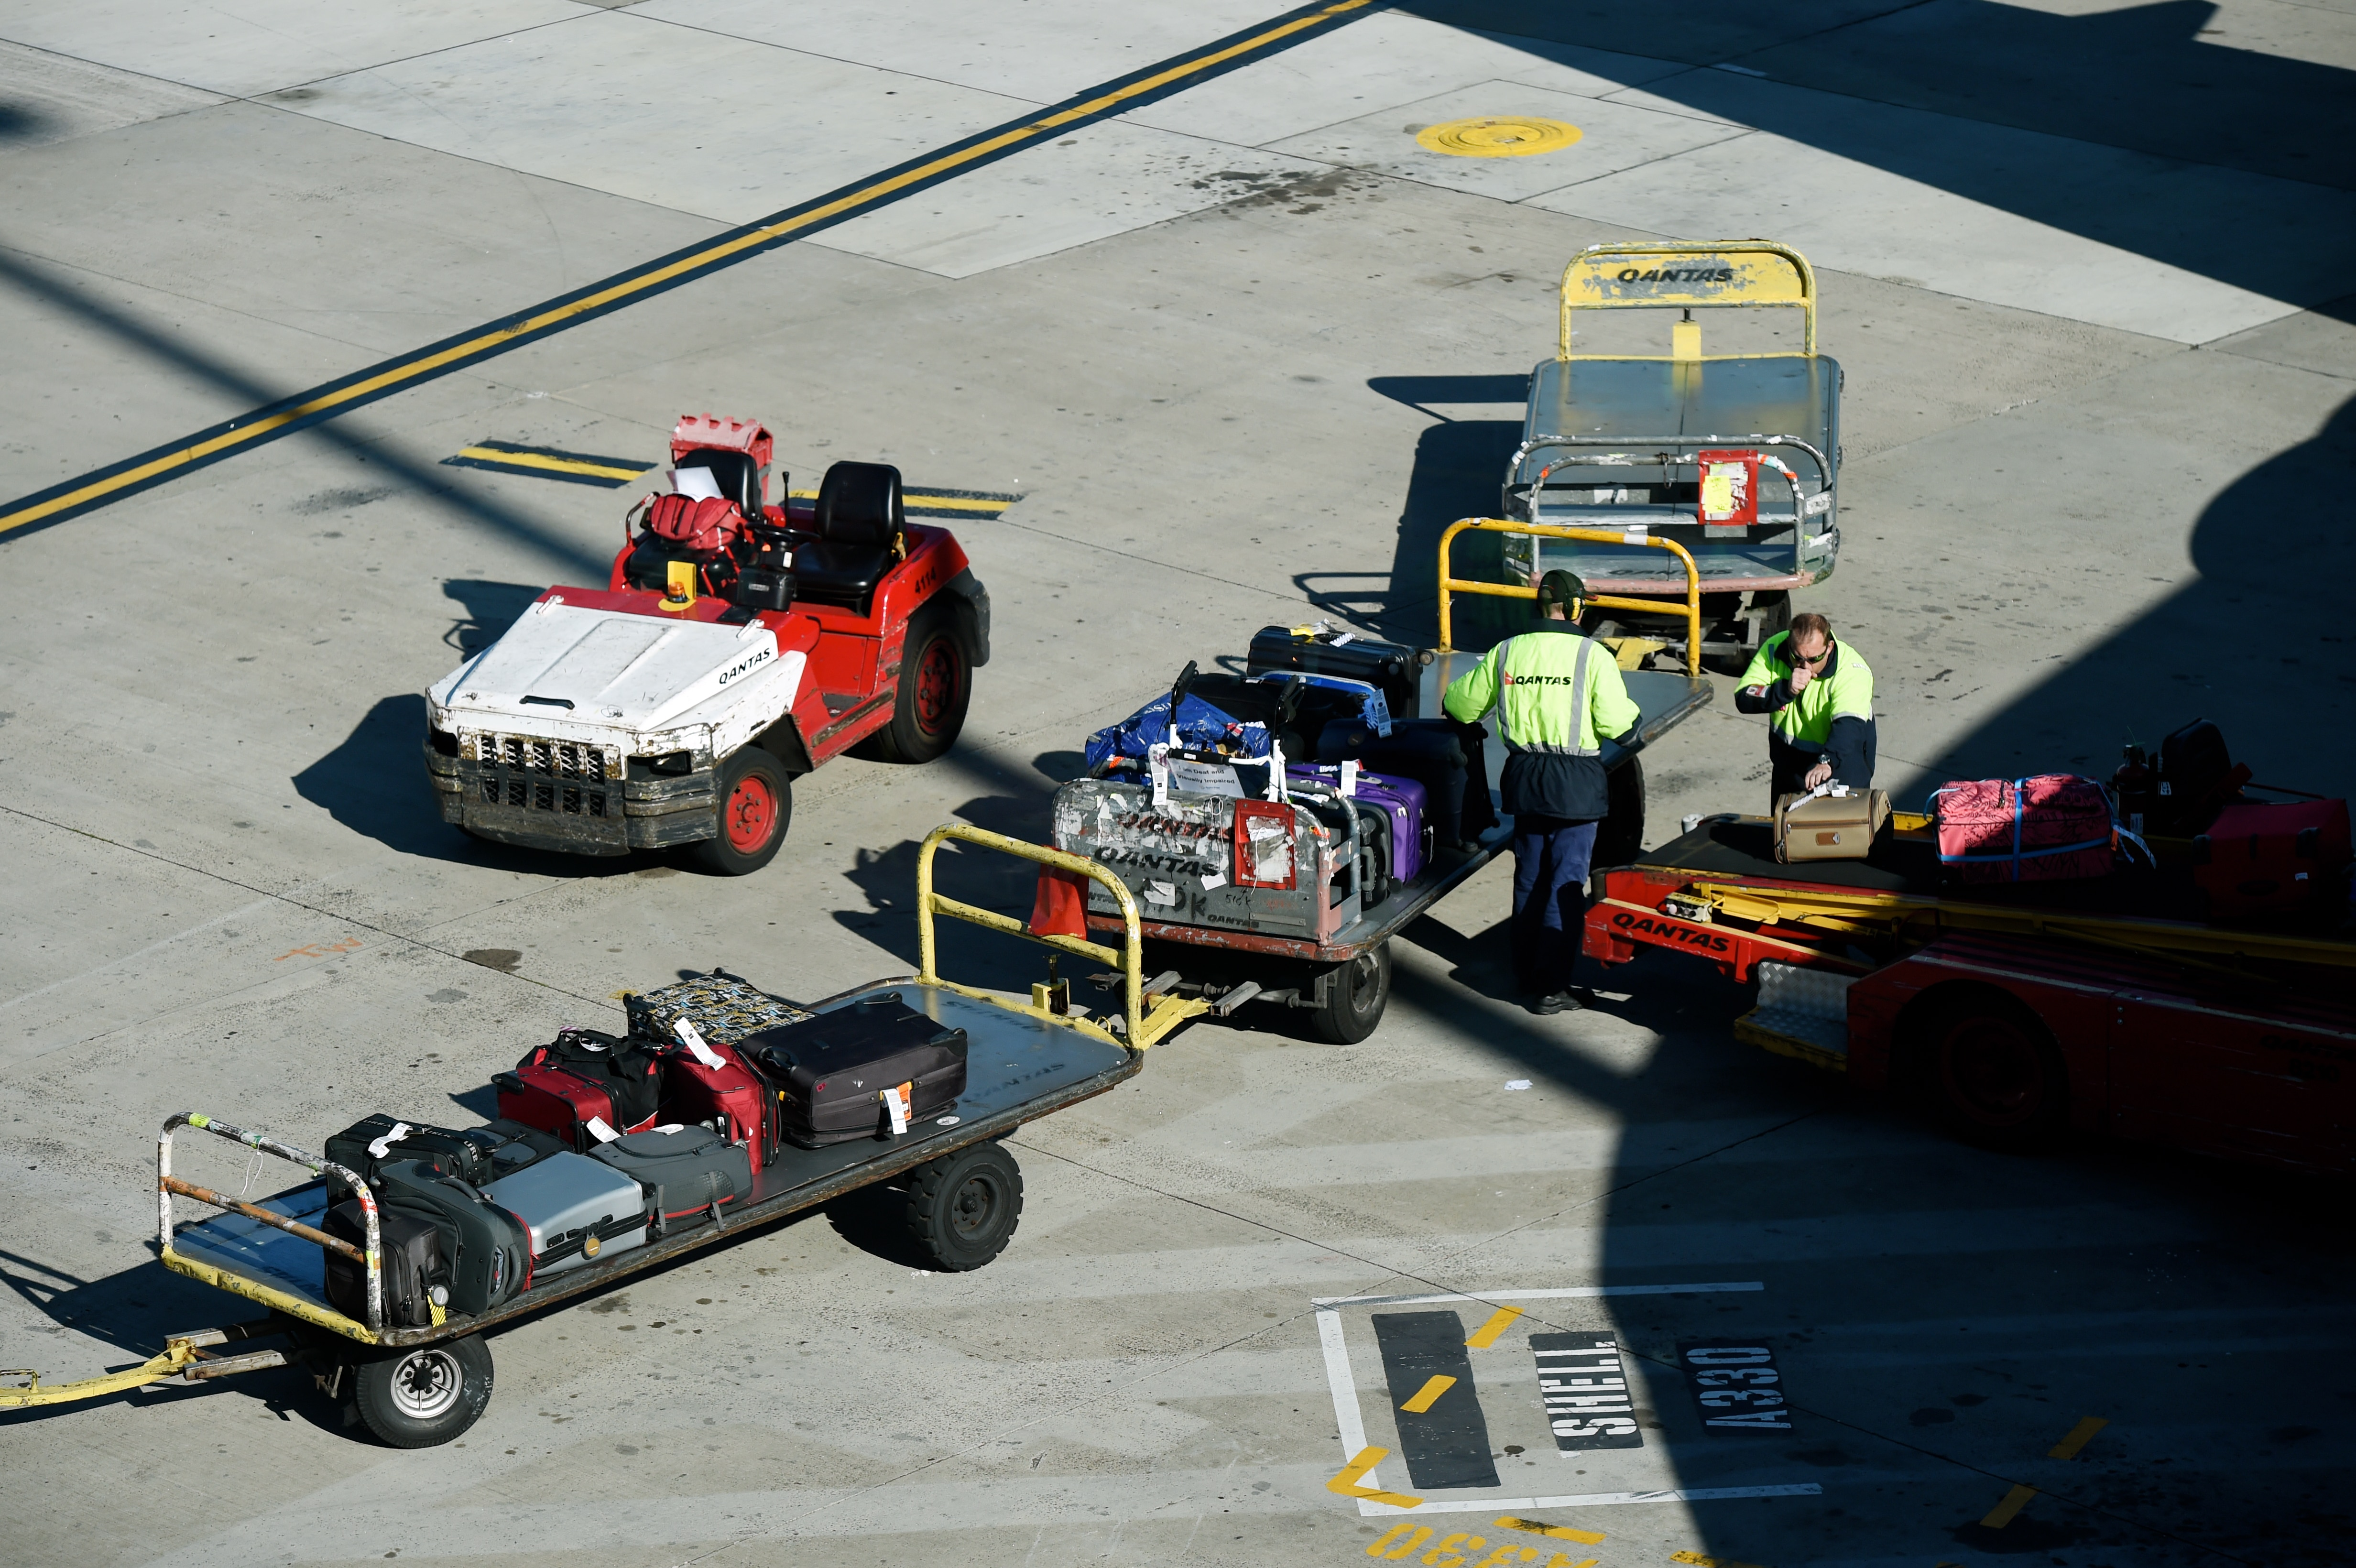 Baggage handlers unload luggage from a QANTAS plane at the domestic terminal in Sydney, Wednesday, July 2, 2014